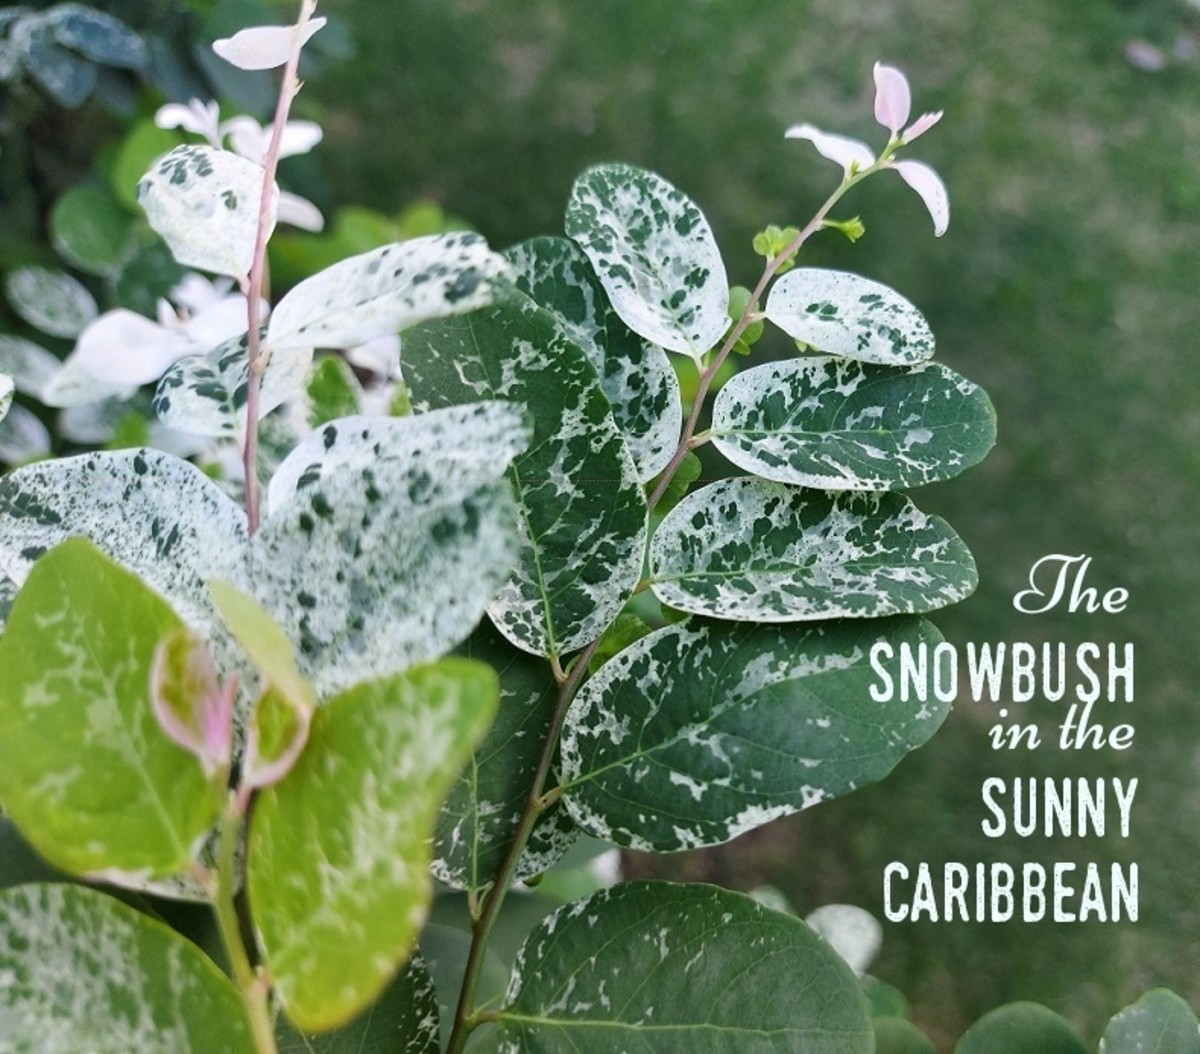 The snowbush was known as old man's beard in my childhood neighborhood.